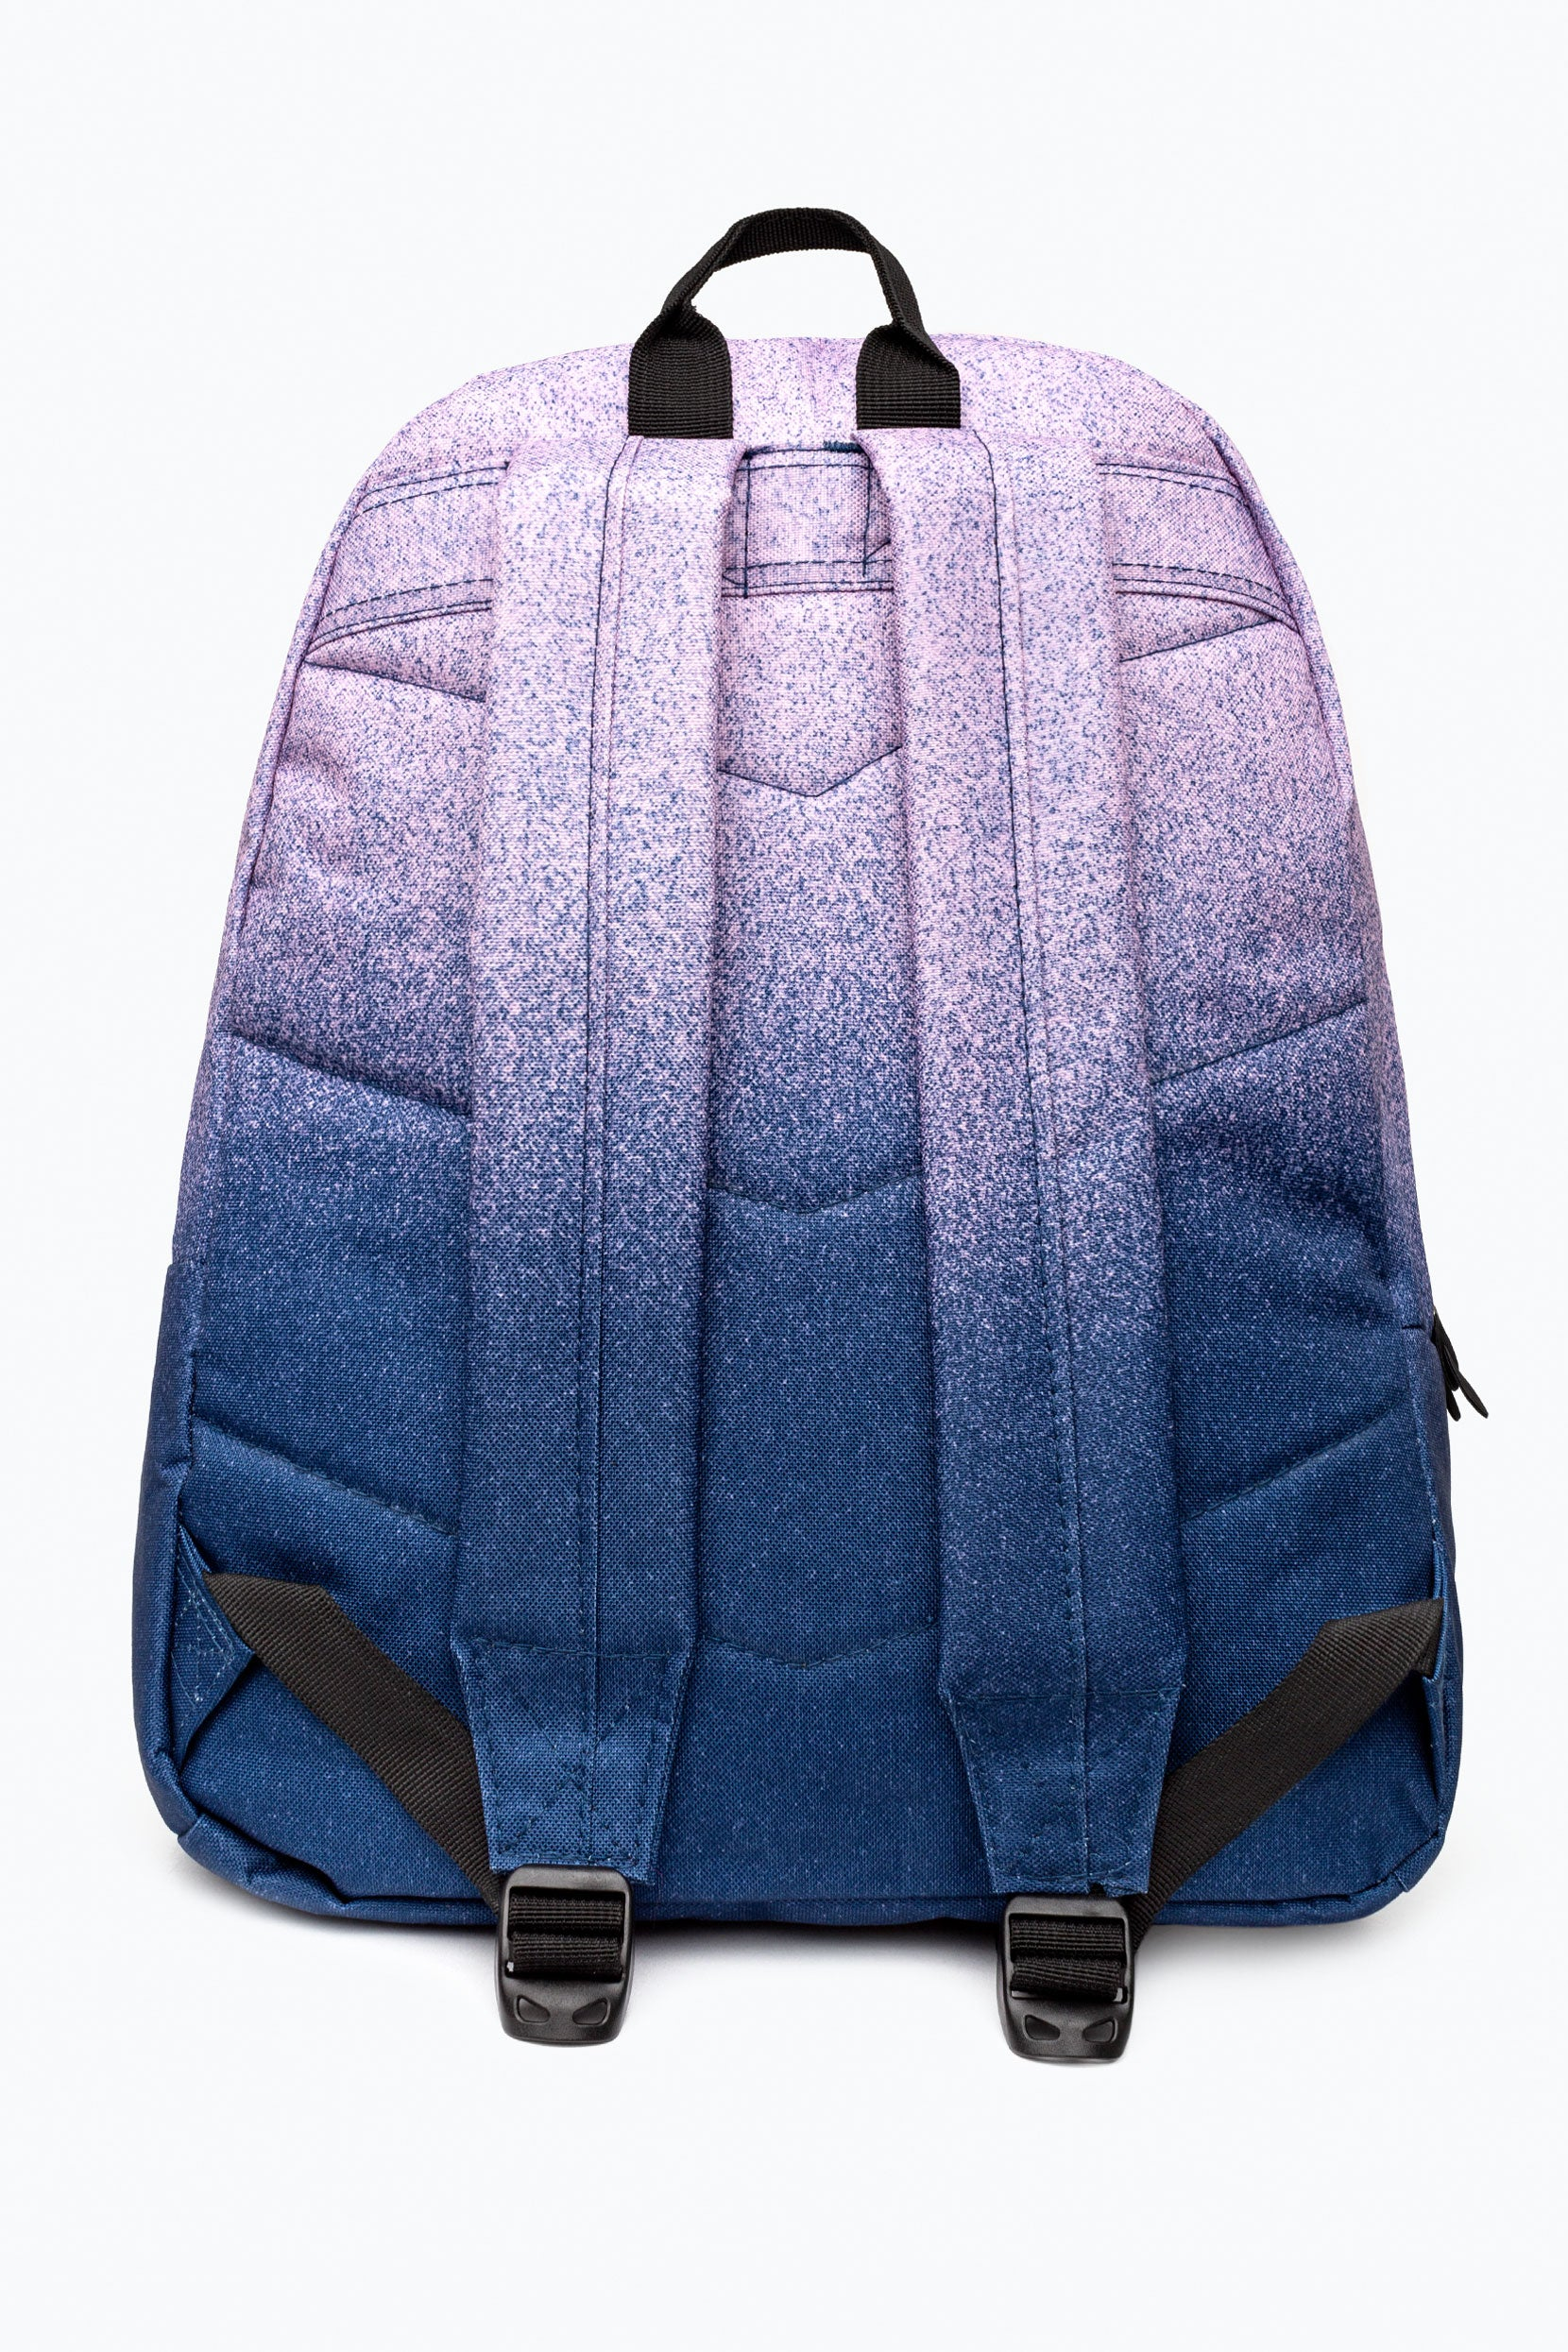 HYPE NAVY PINK FADE BACKPACK | Justhype ltd